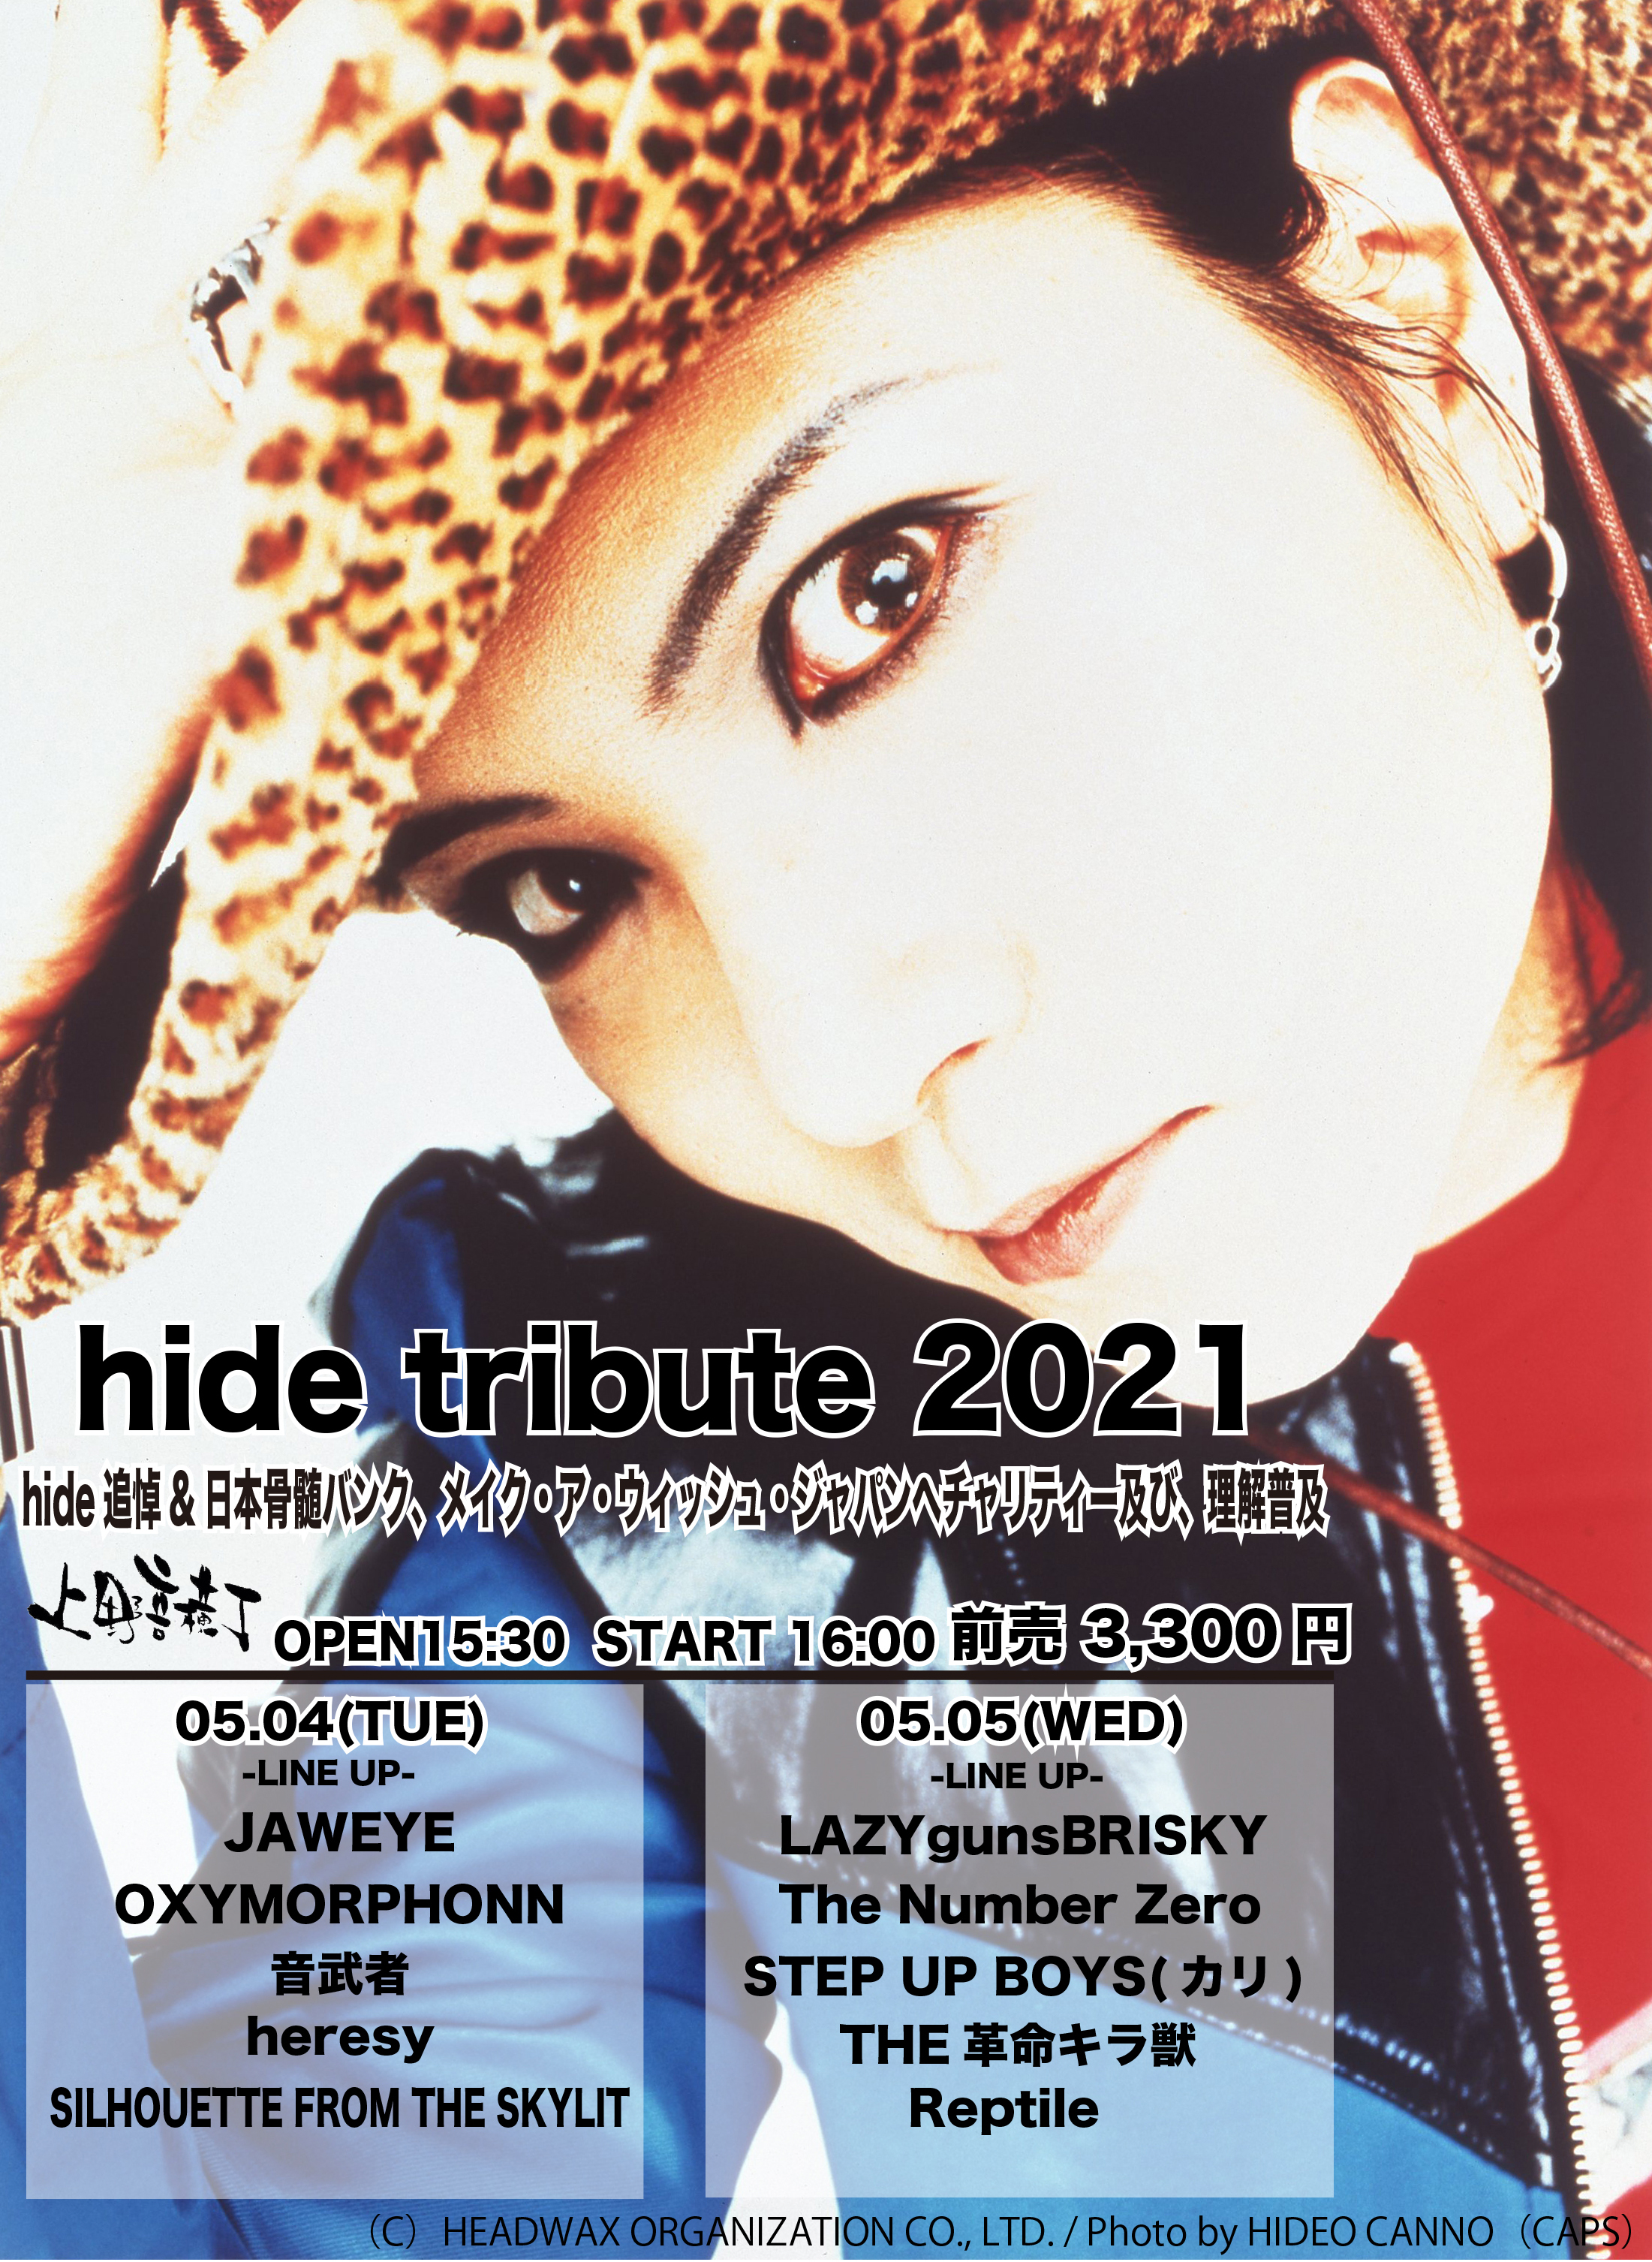 "hide Presents Our Pink Spider 2021 hide tribute 2021 ""hide追悼&日本骨髄バンク、メイク・ア・ウィッシュ・ジャパンへチャリティー及び、理解普及"""